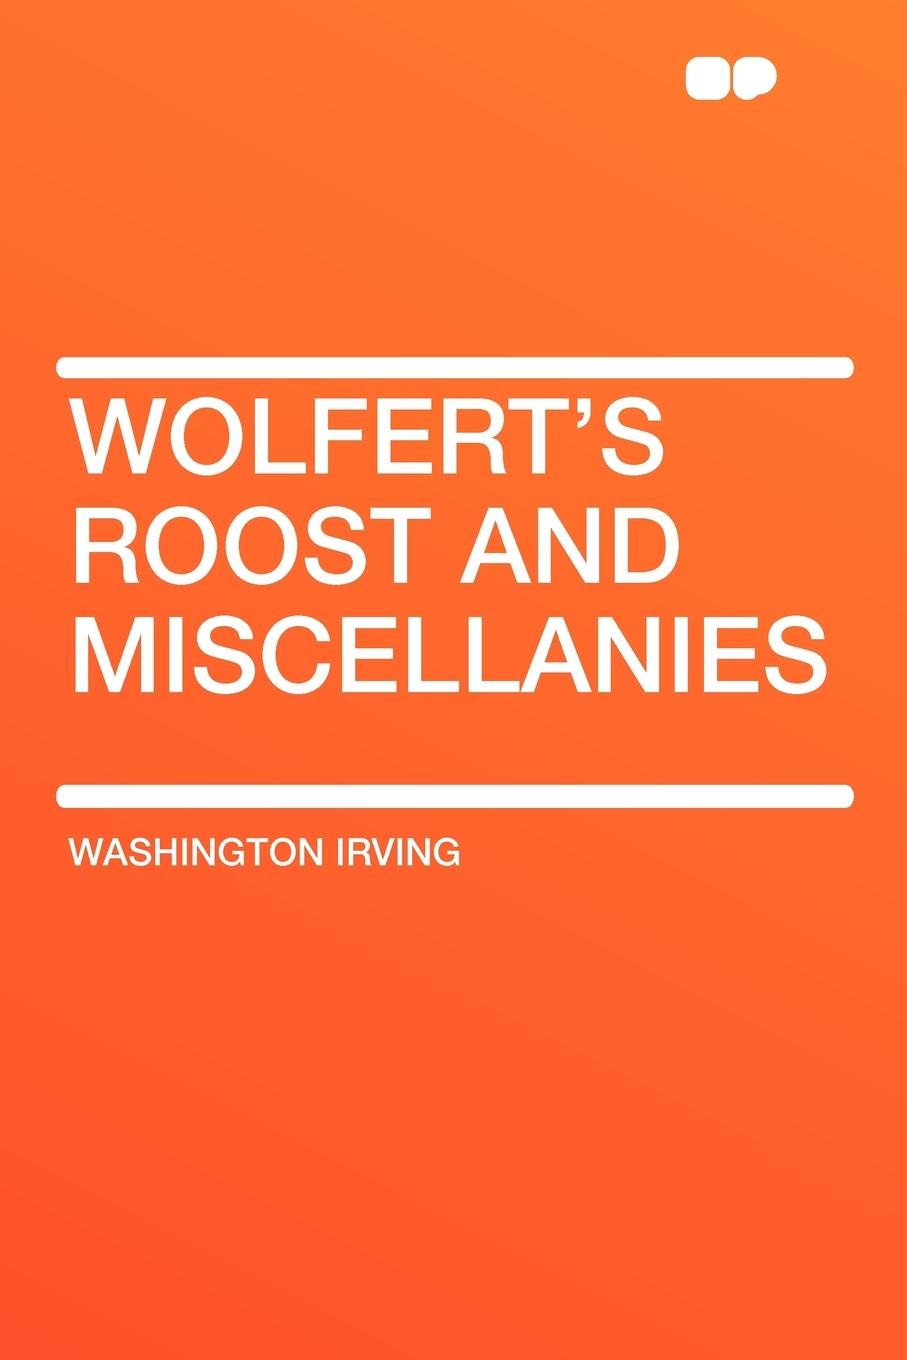 Washington Irving Wolfert's Roost and Miscellanies washington irving wolfert s roost and miscellanies